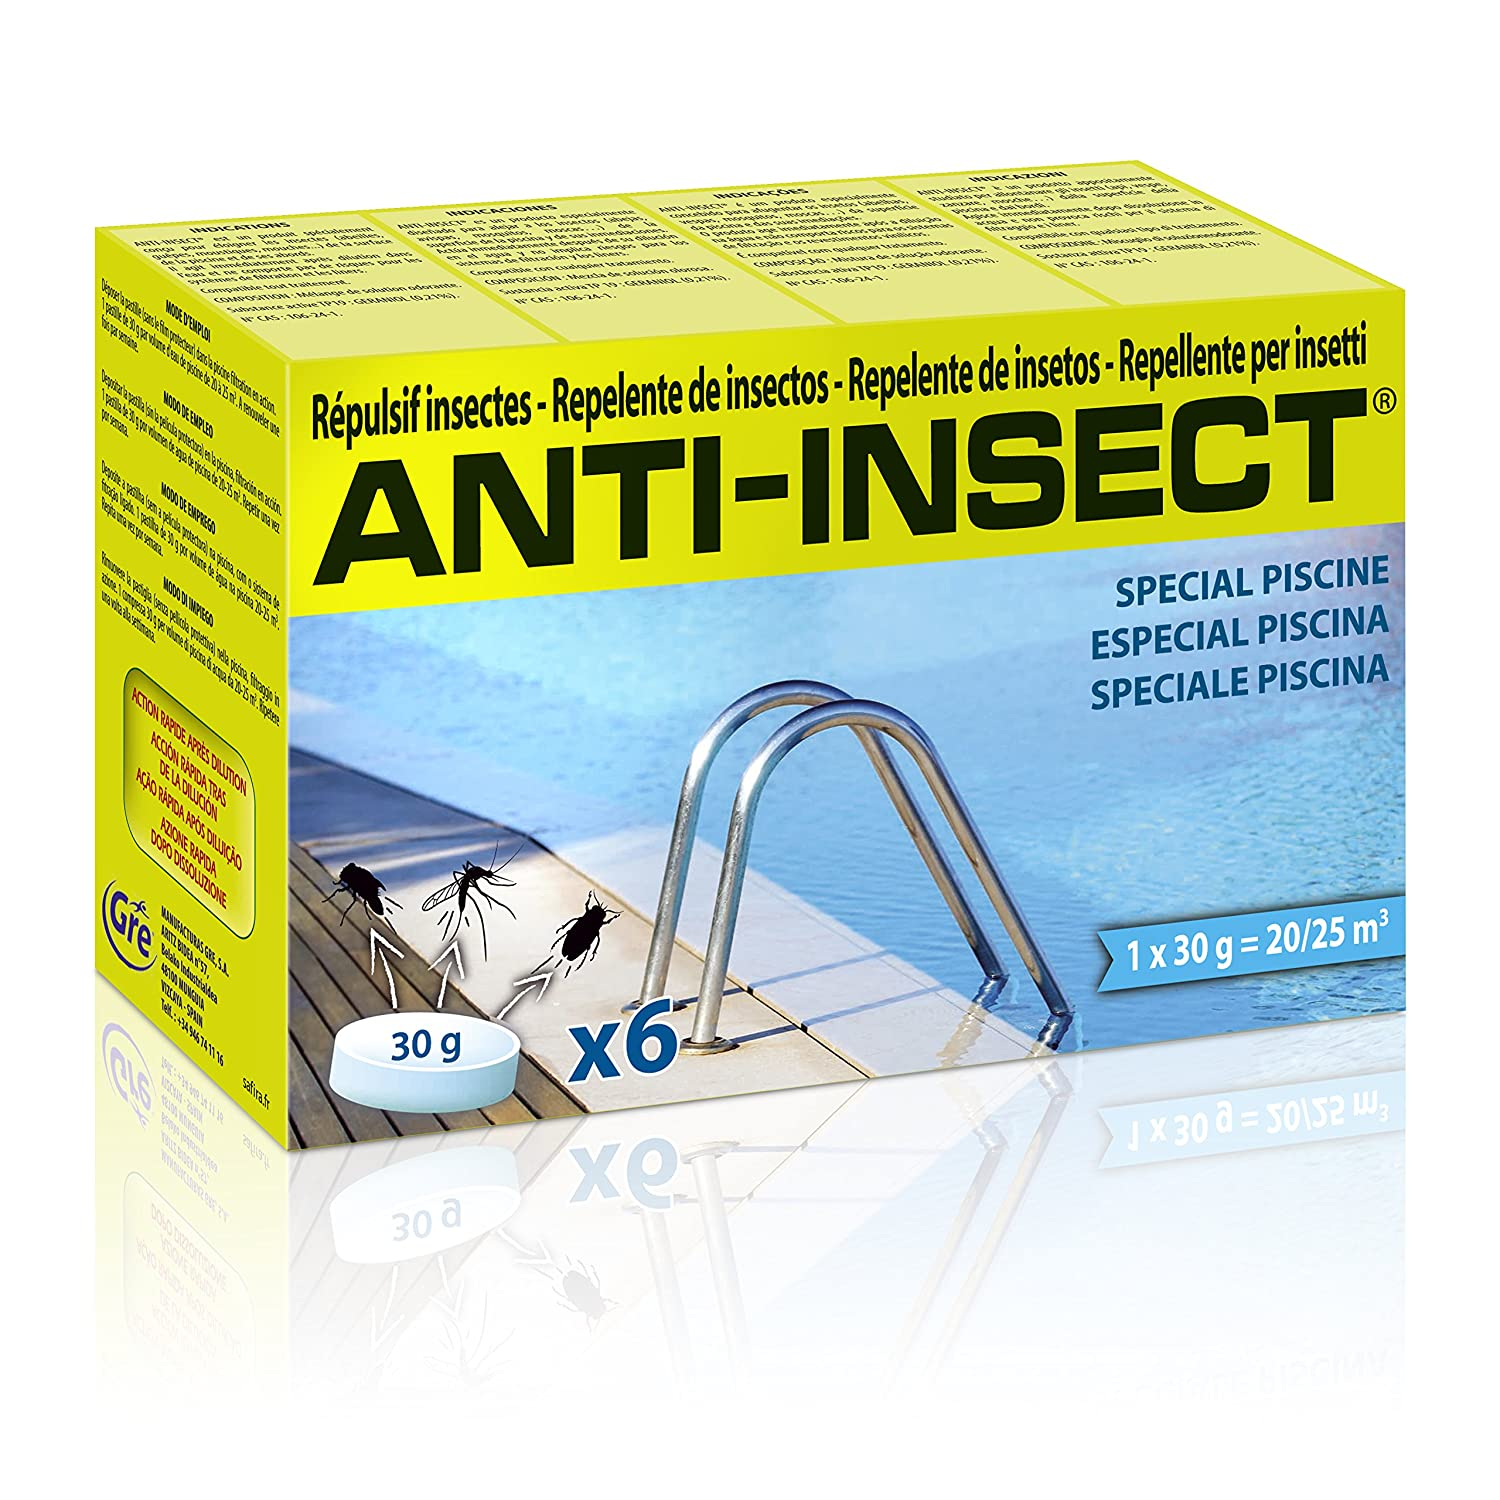 Anti Insect Refill 430275 Insect Repellent White